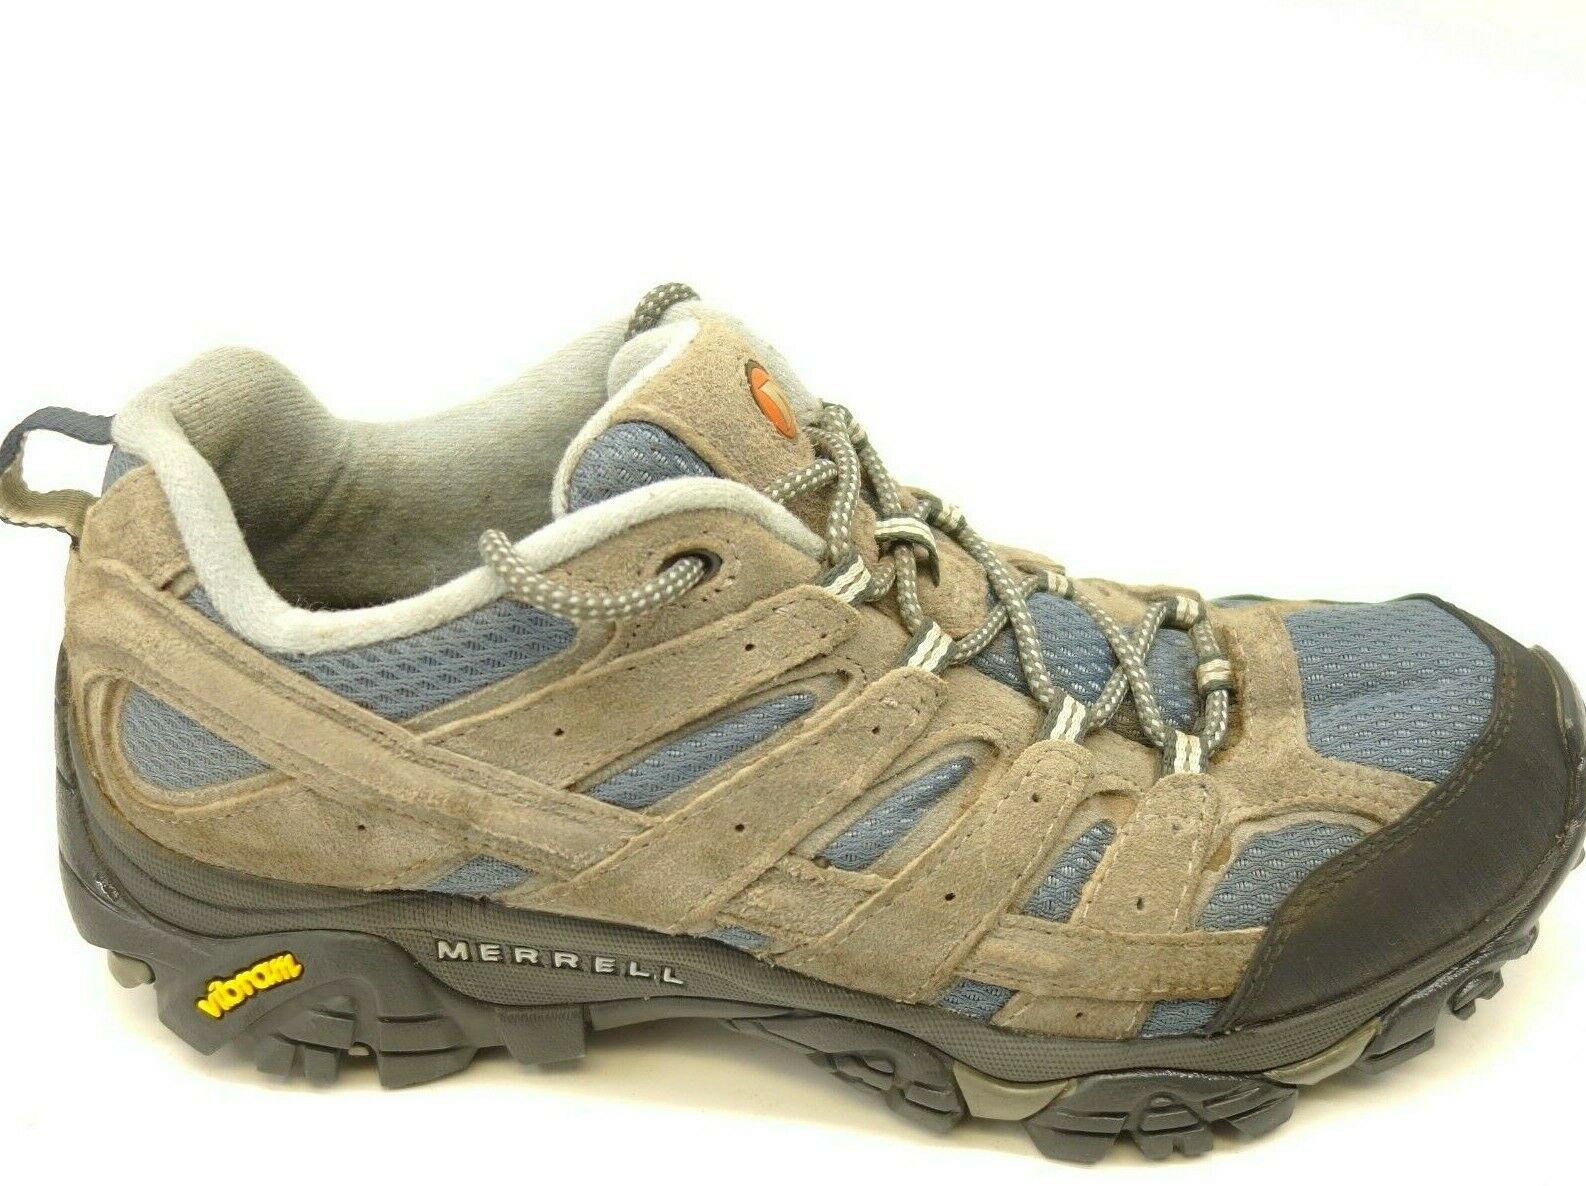 Merrell Moab 2 Ventilator Low Sz 10 Breathable Hiking Athletic Womens shoes